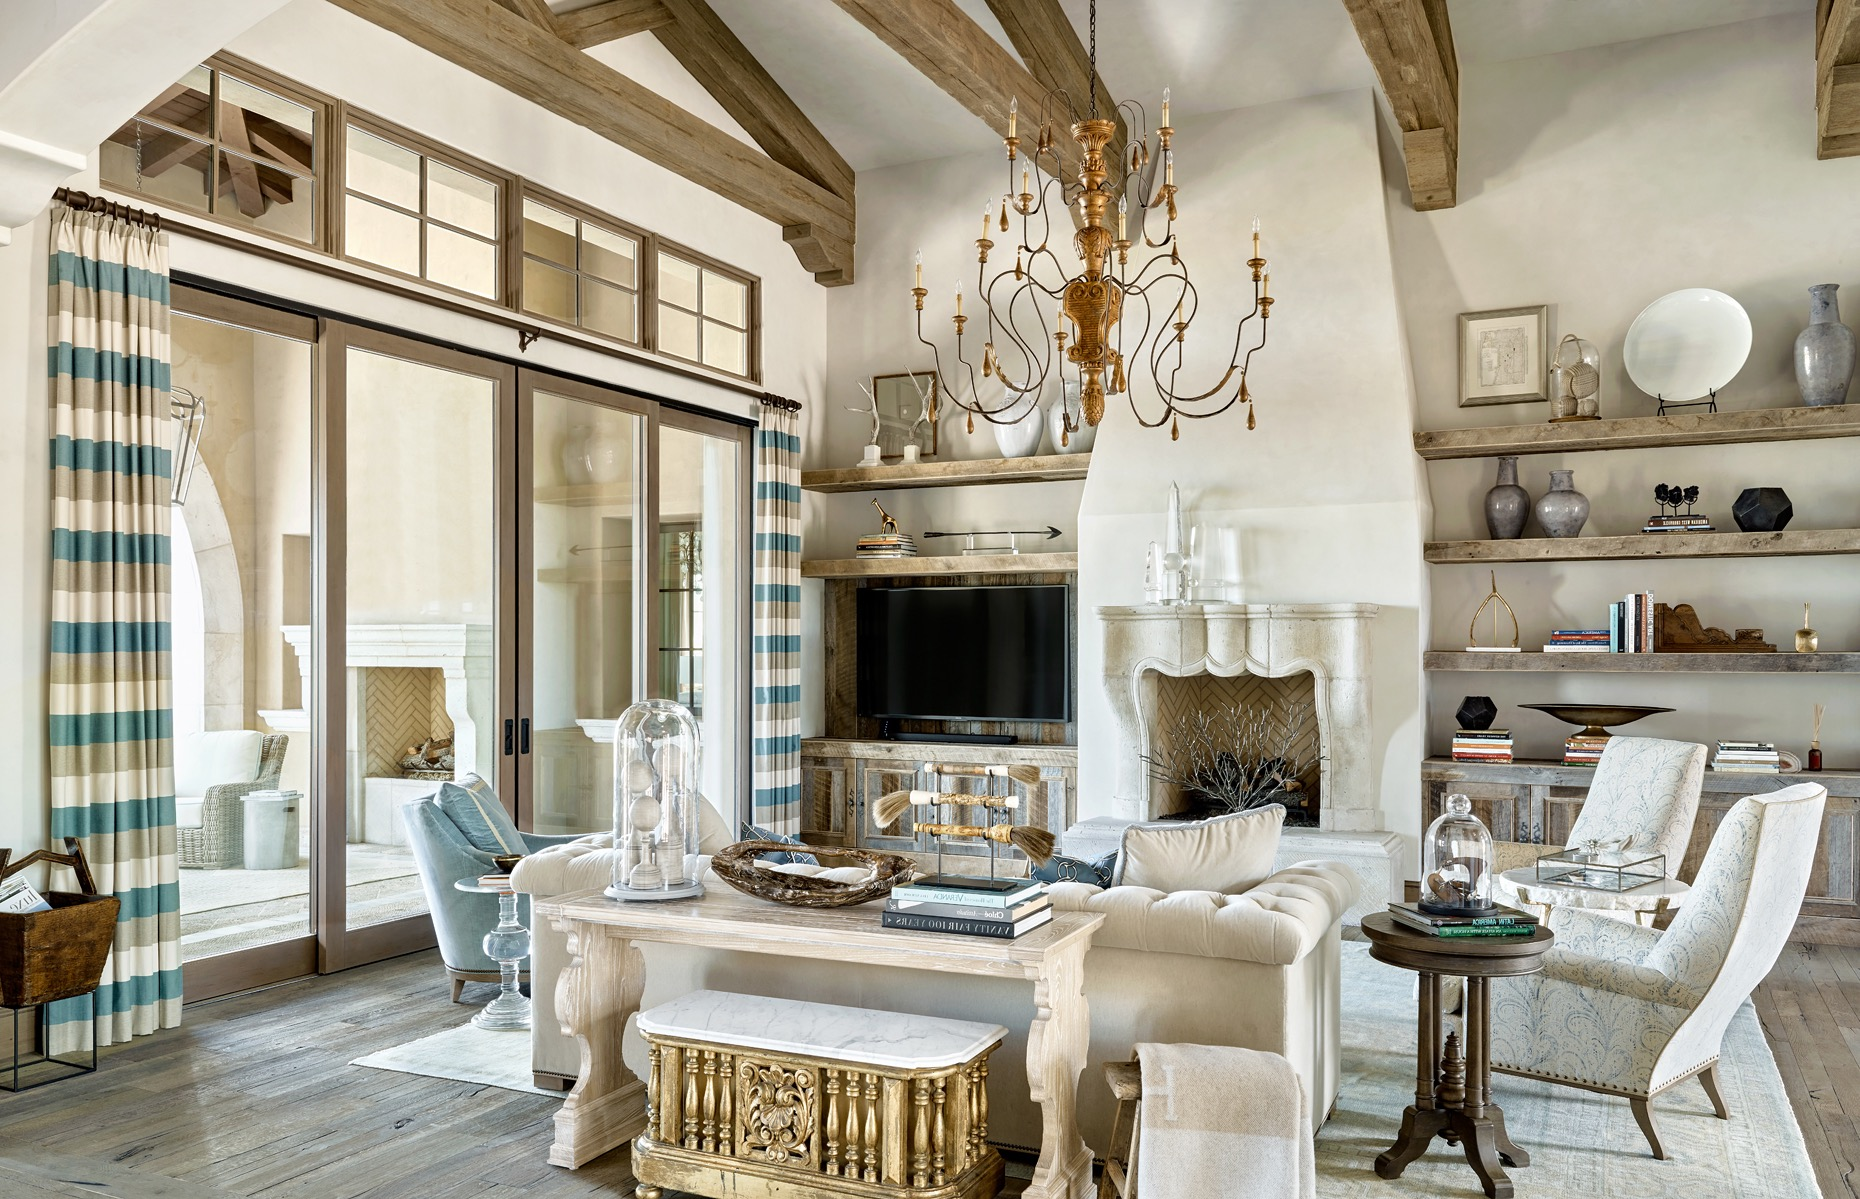 Mediterranean Style Living Room With Rustic Furniture (Image 18 of 25)